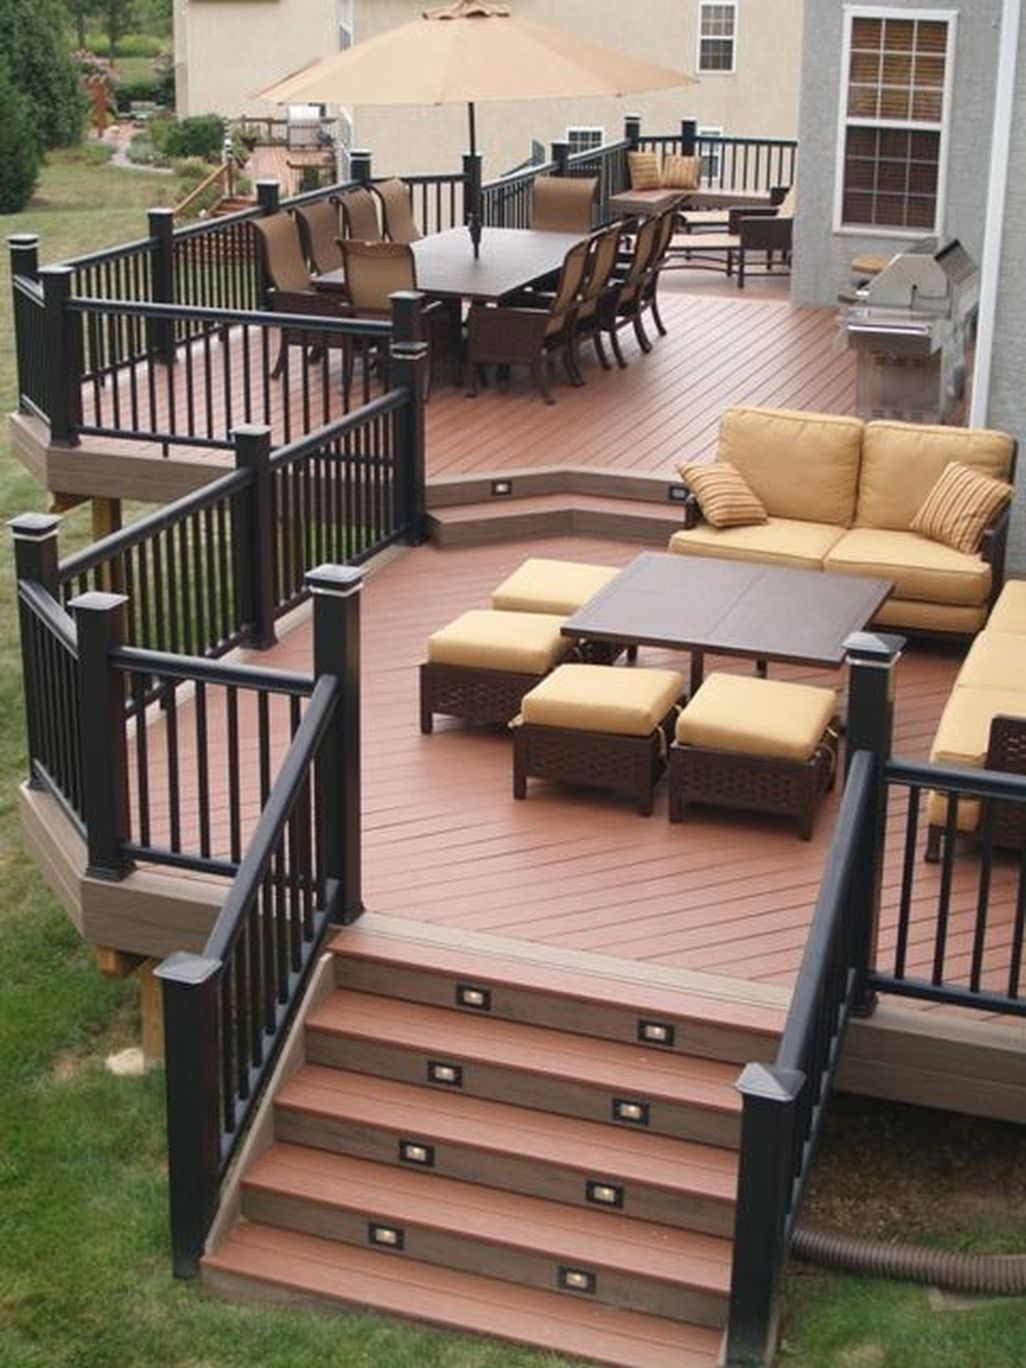 43 Cozy Backyard Patio Deck Design Decoration Ideas Backyard inside Backyard Patio Deck Ideas